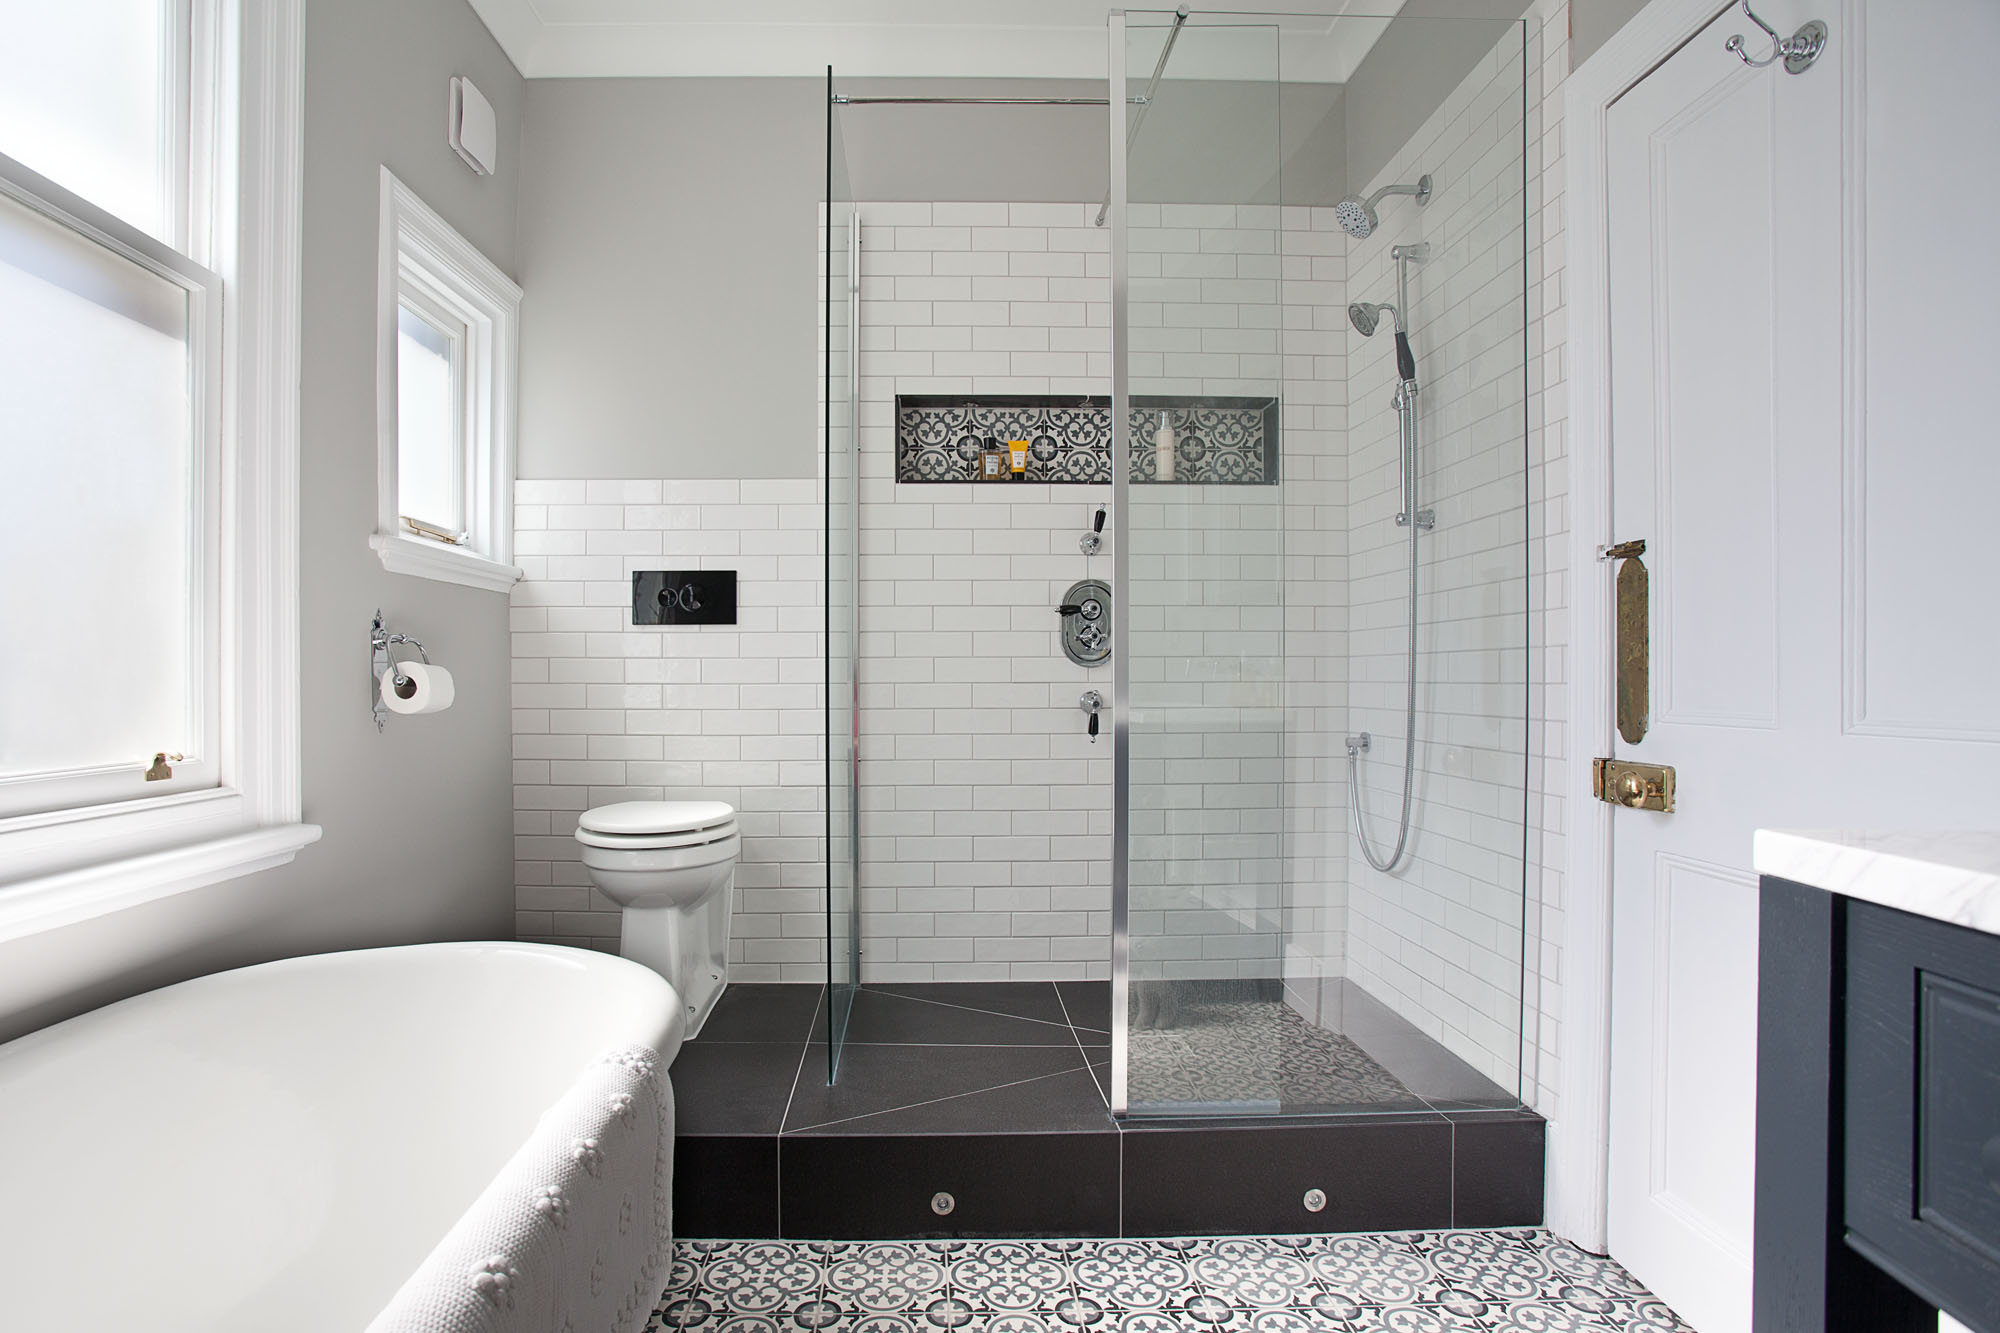 luxury bathroom encaustic tiles